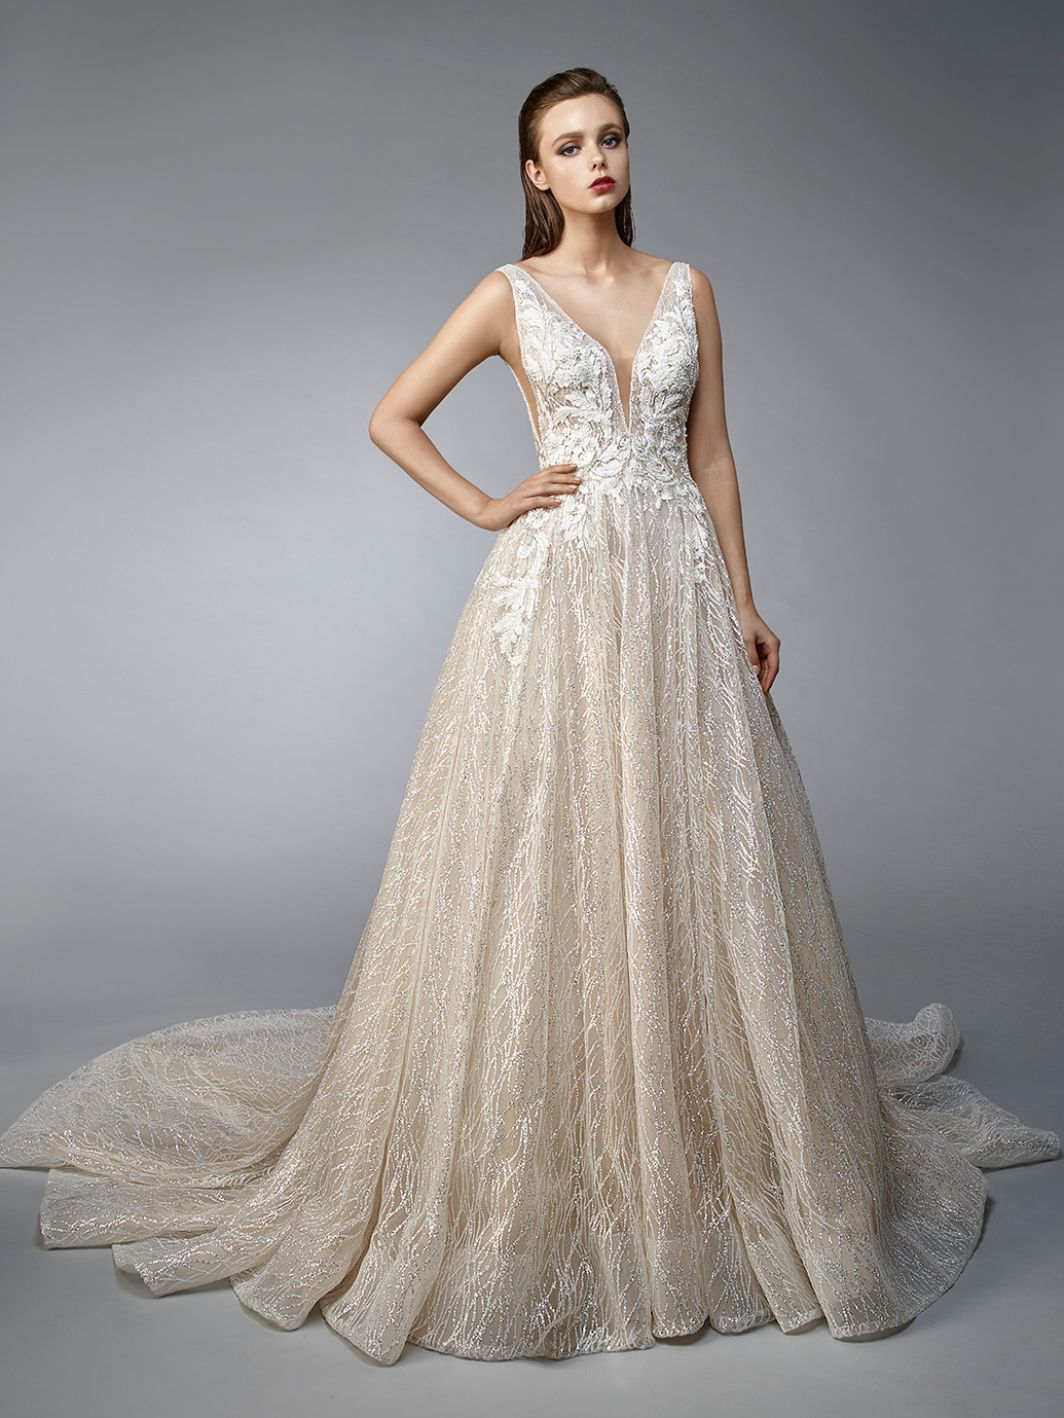 79235cdc2d Nellie by ENZOANI-available at Uptown Bridal